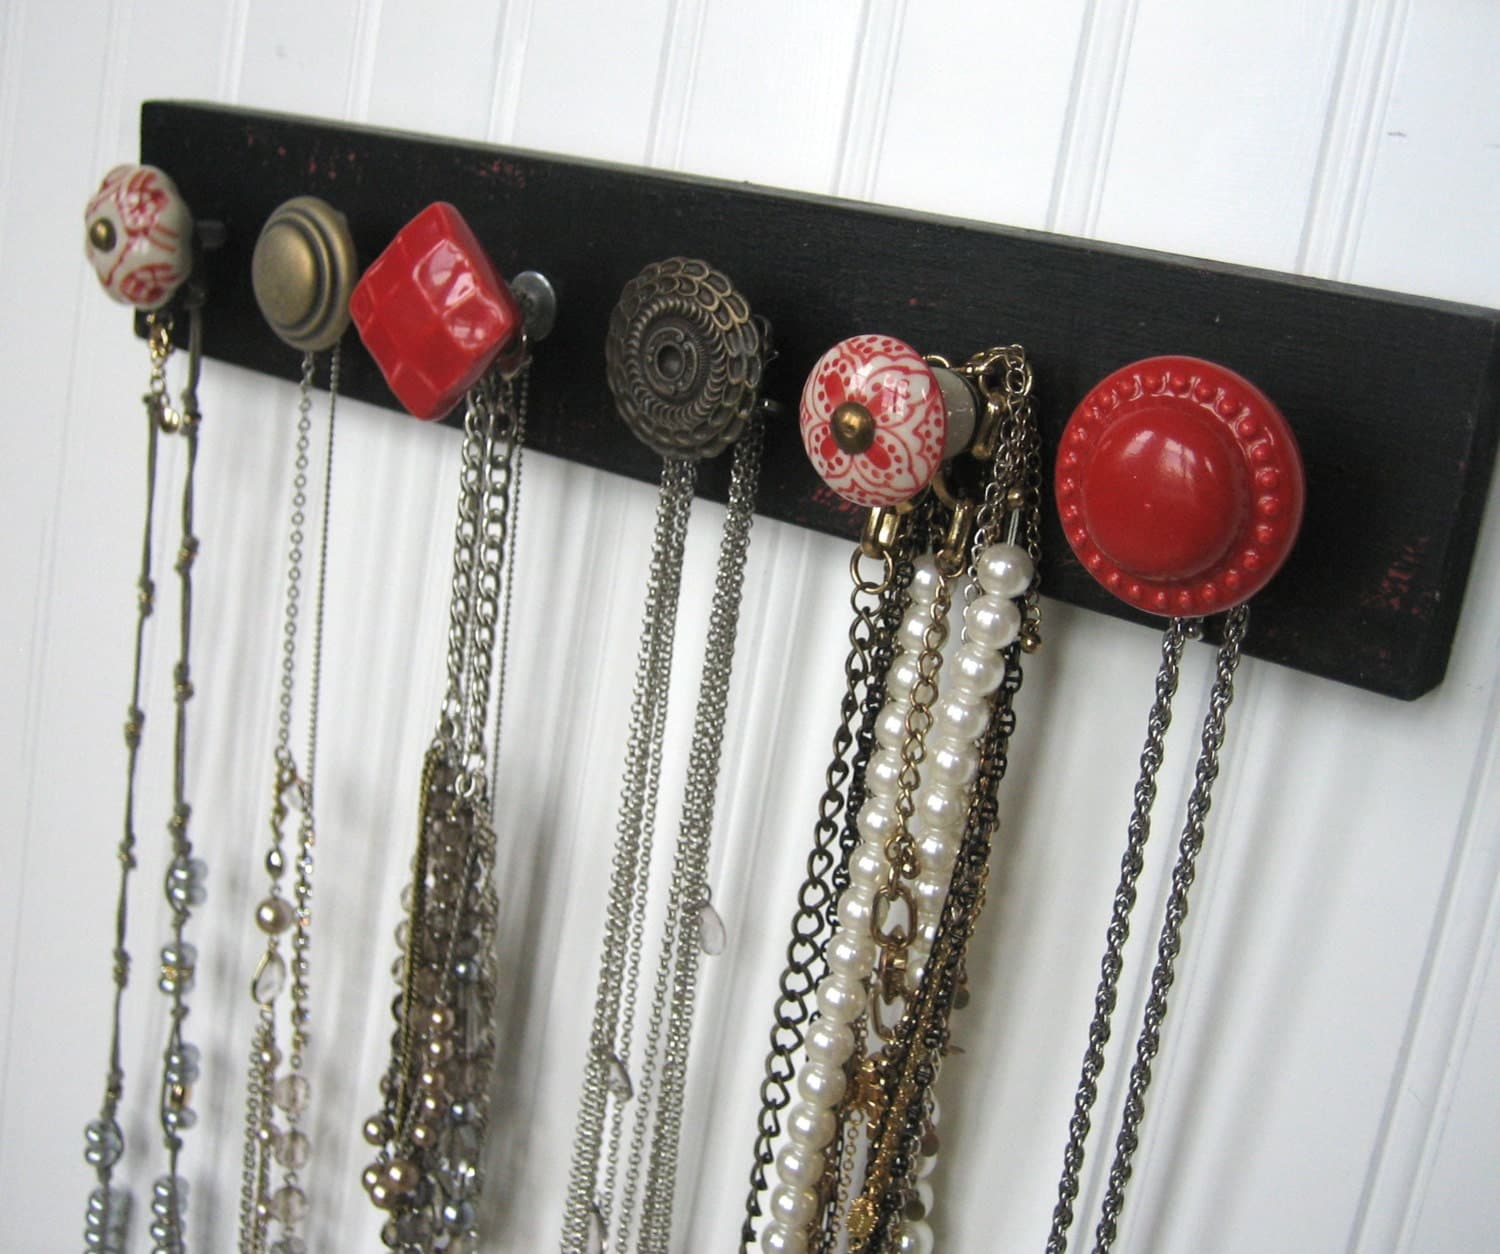 Jewelry Organizers Wall: Necklace Holder / Wall Mounted Jewelry Organizer Red On